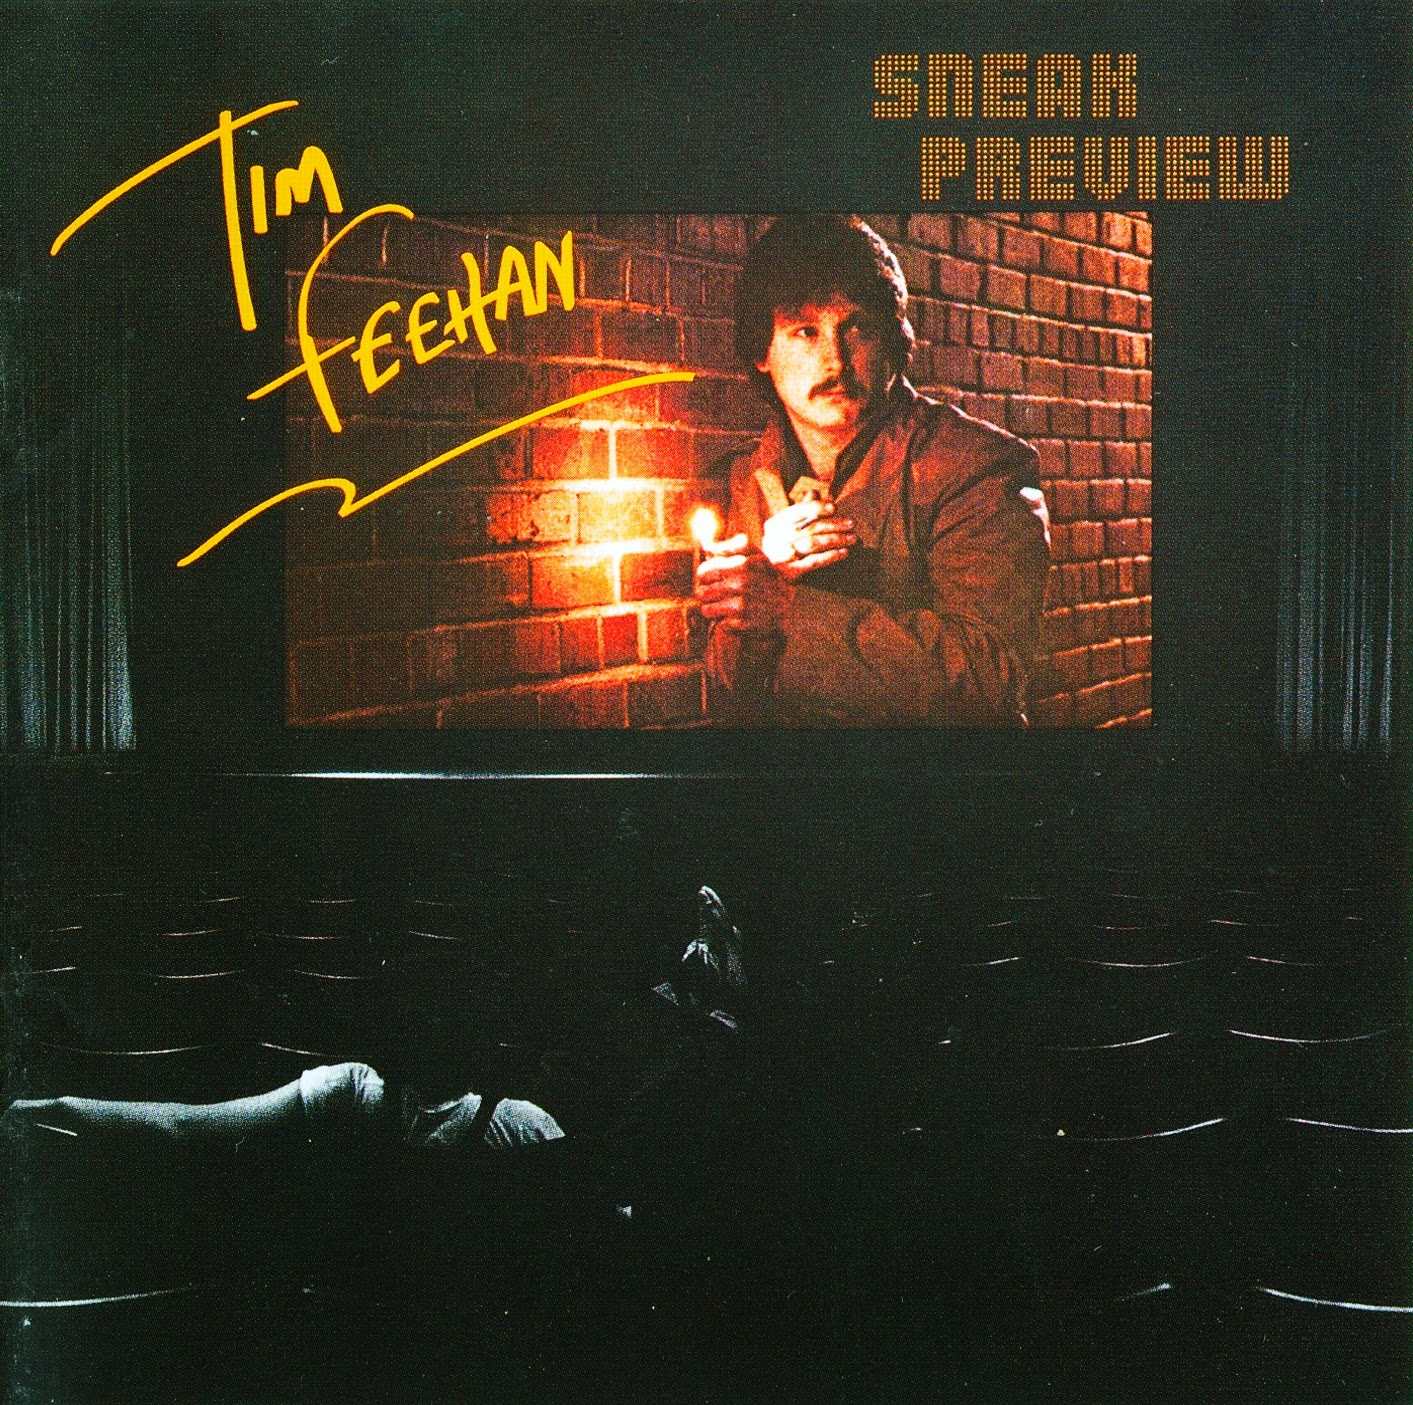 Tim Feehan Sneak preview 1981 aor melodic rock music blogspot albums bands